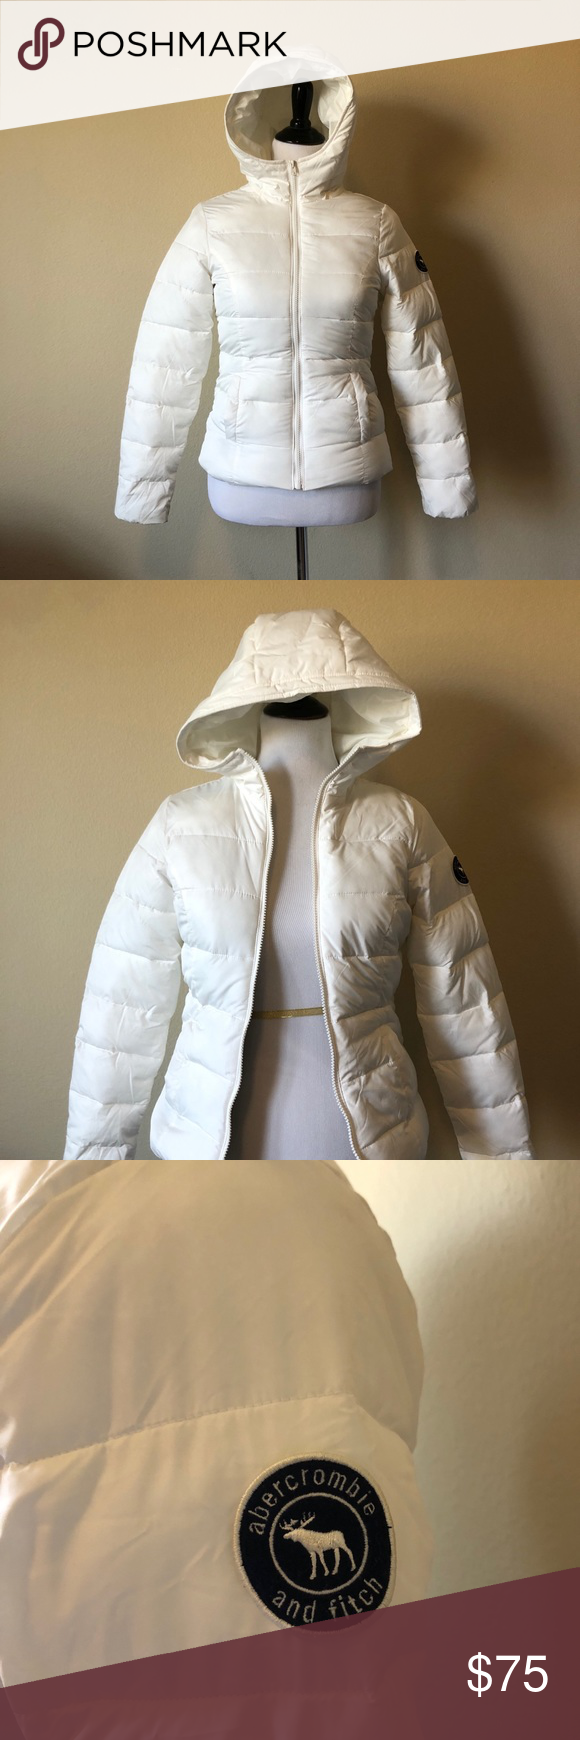 White Puffer Jacket Kids Extra Large Great Condition Abercrombie Kids Jackets Coats Puffers Clothes Design Puffer Jackets Fashion Design [ 1740 x 580 Pixel ]